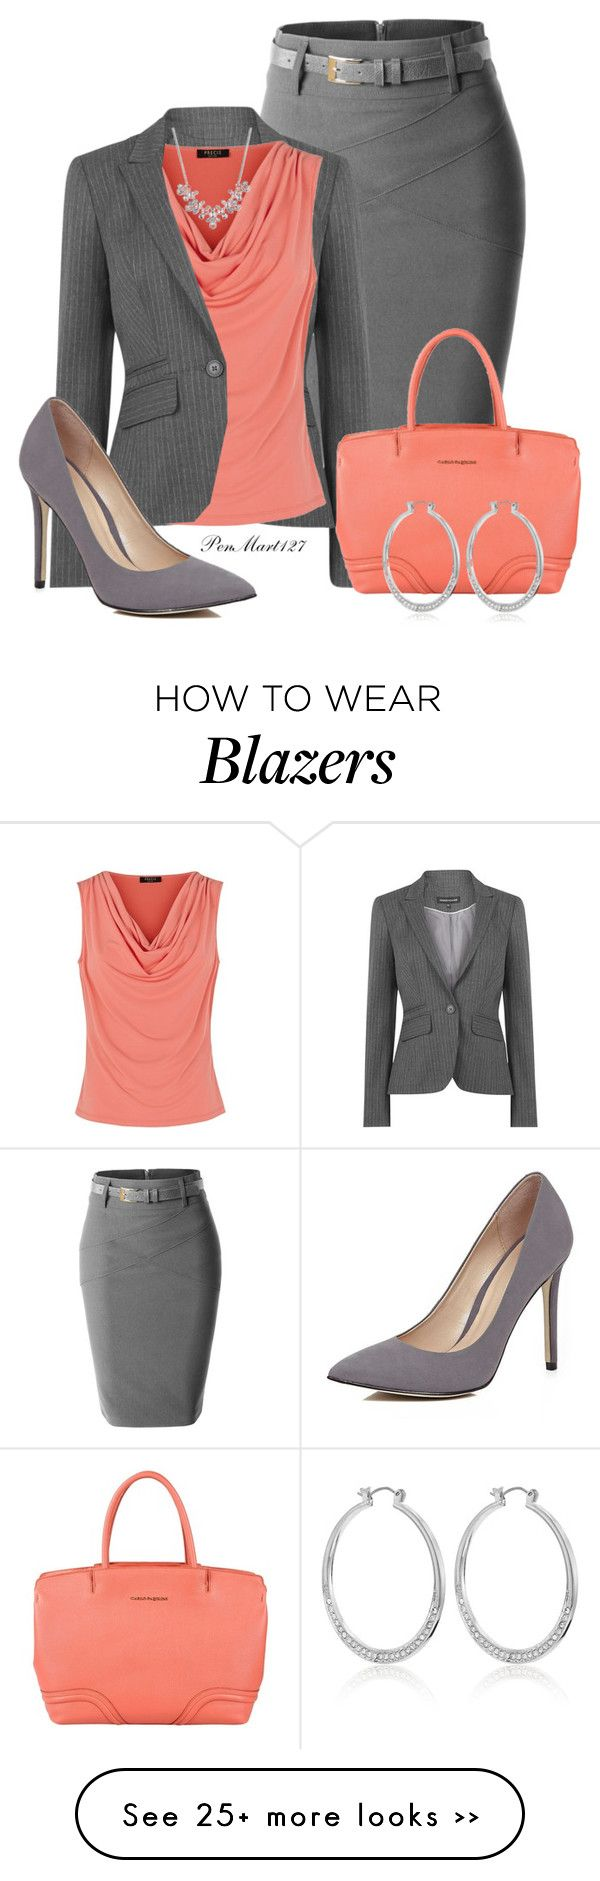 173 best images about Professional Attire on Pinterest ...